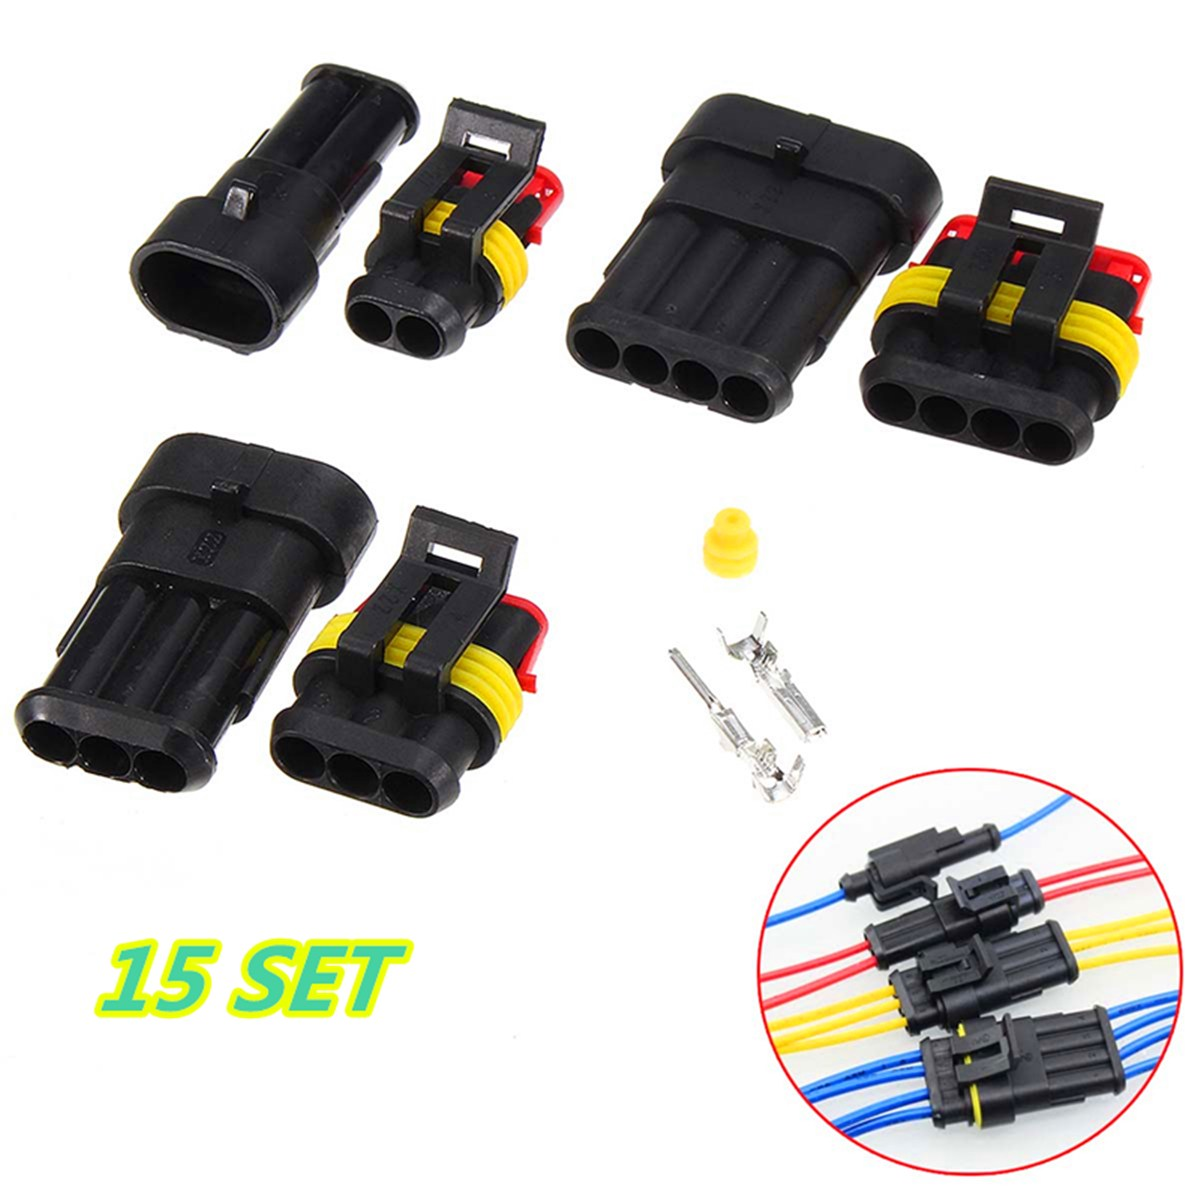 15 Sets of 2//3//4 Pins Way Car Sealed Waterproof Electrical Wire Connector Plug